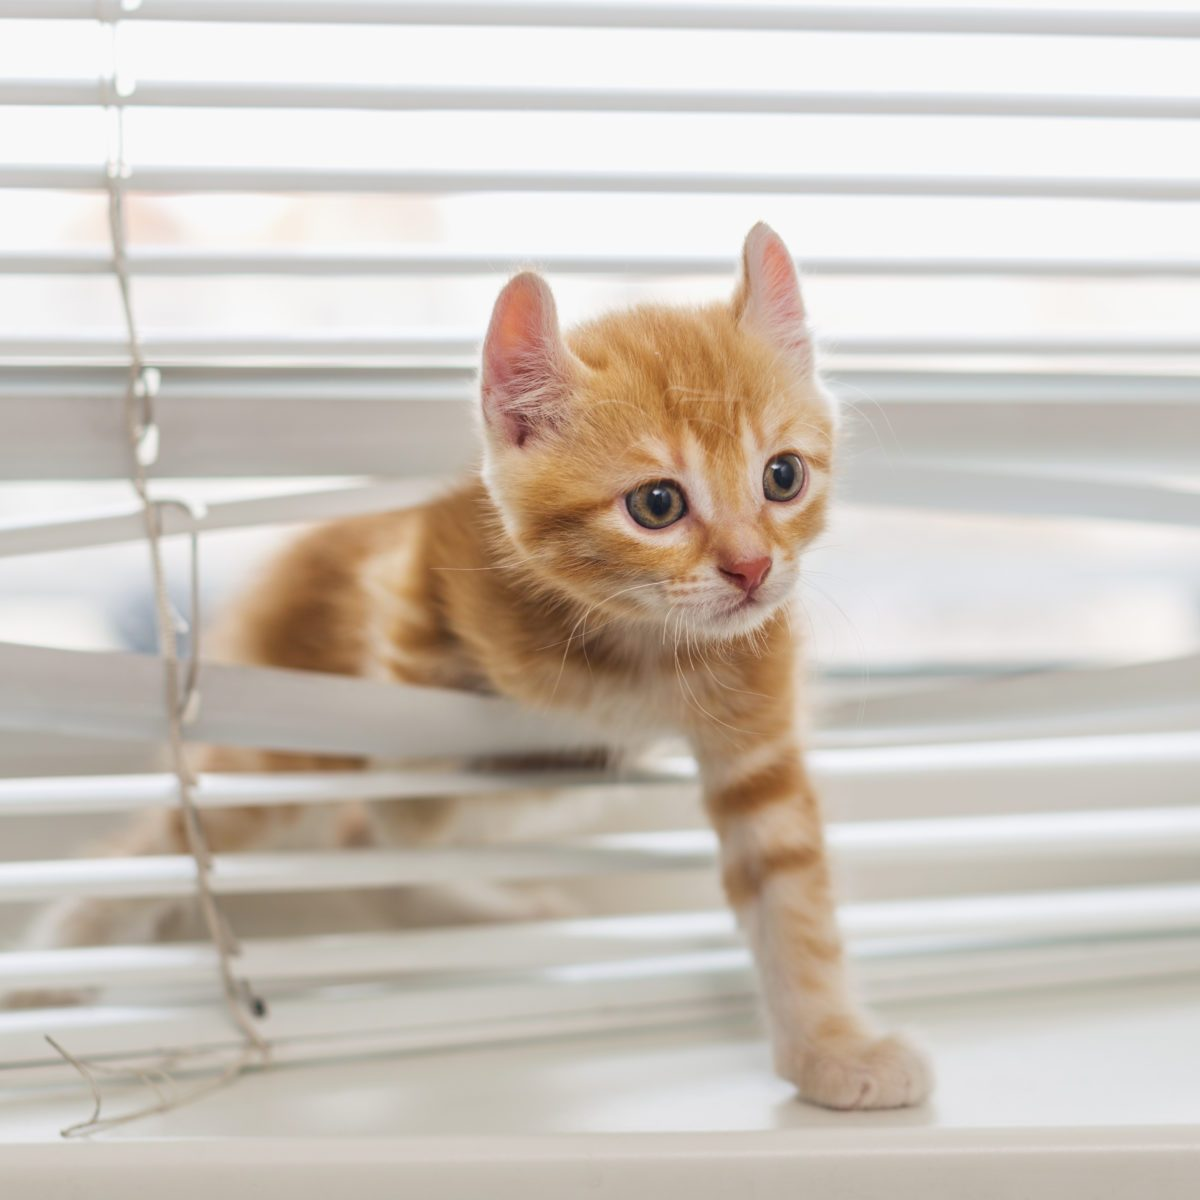 10 Things You Shouldn't Own If You Have a Cat